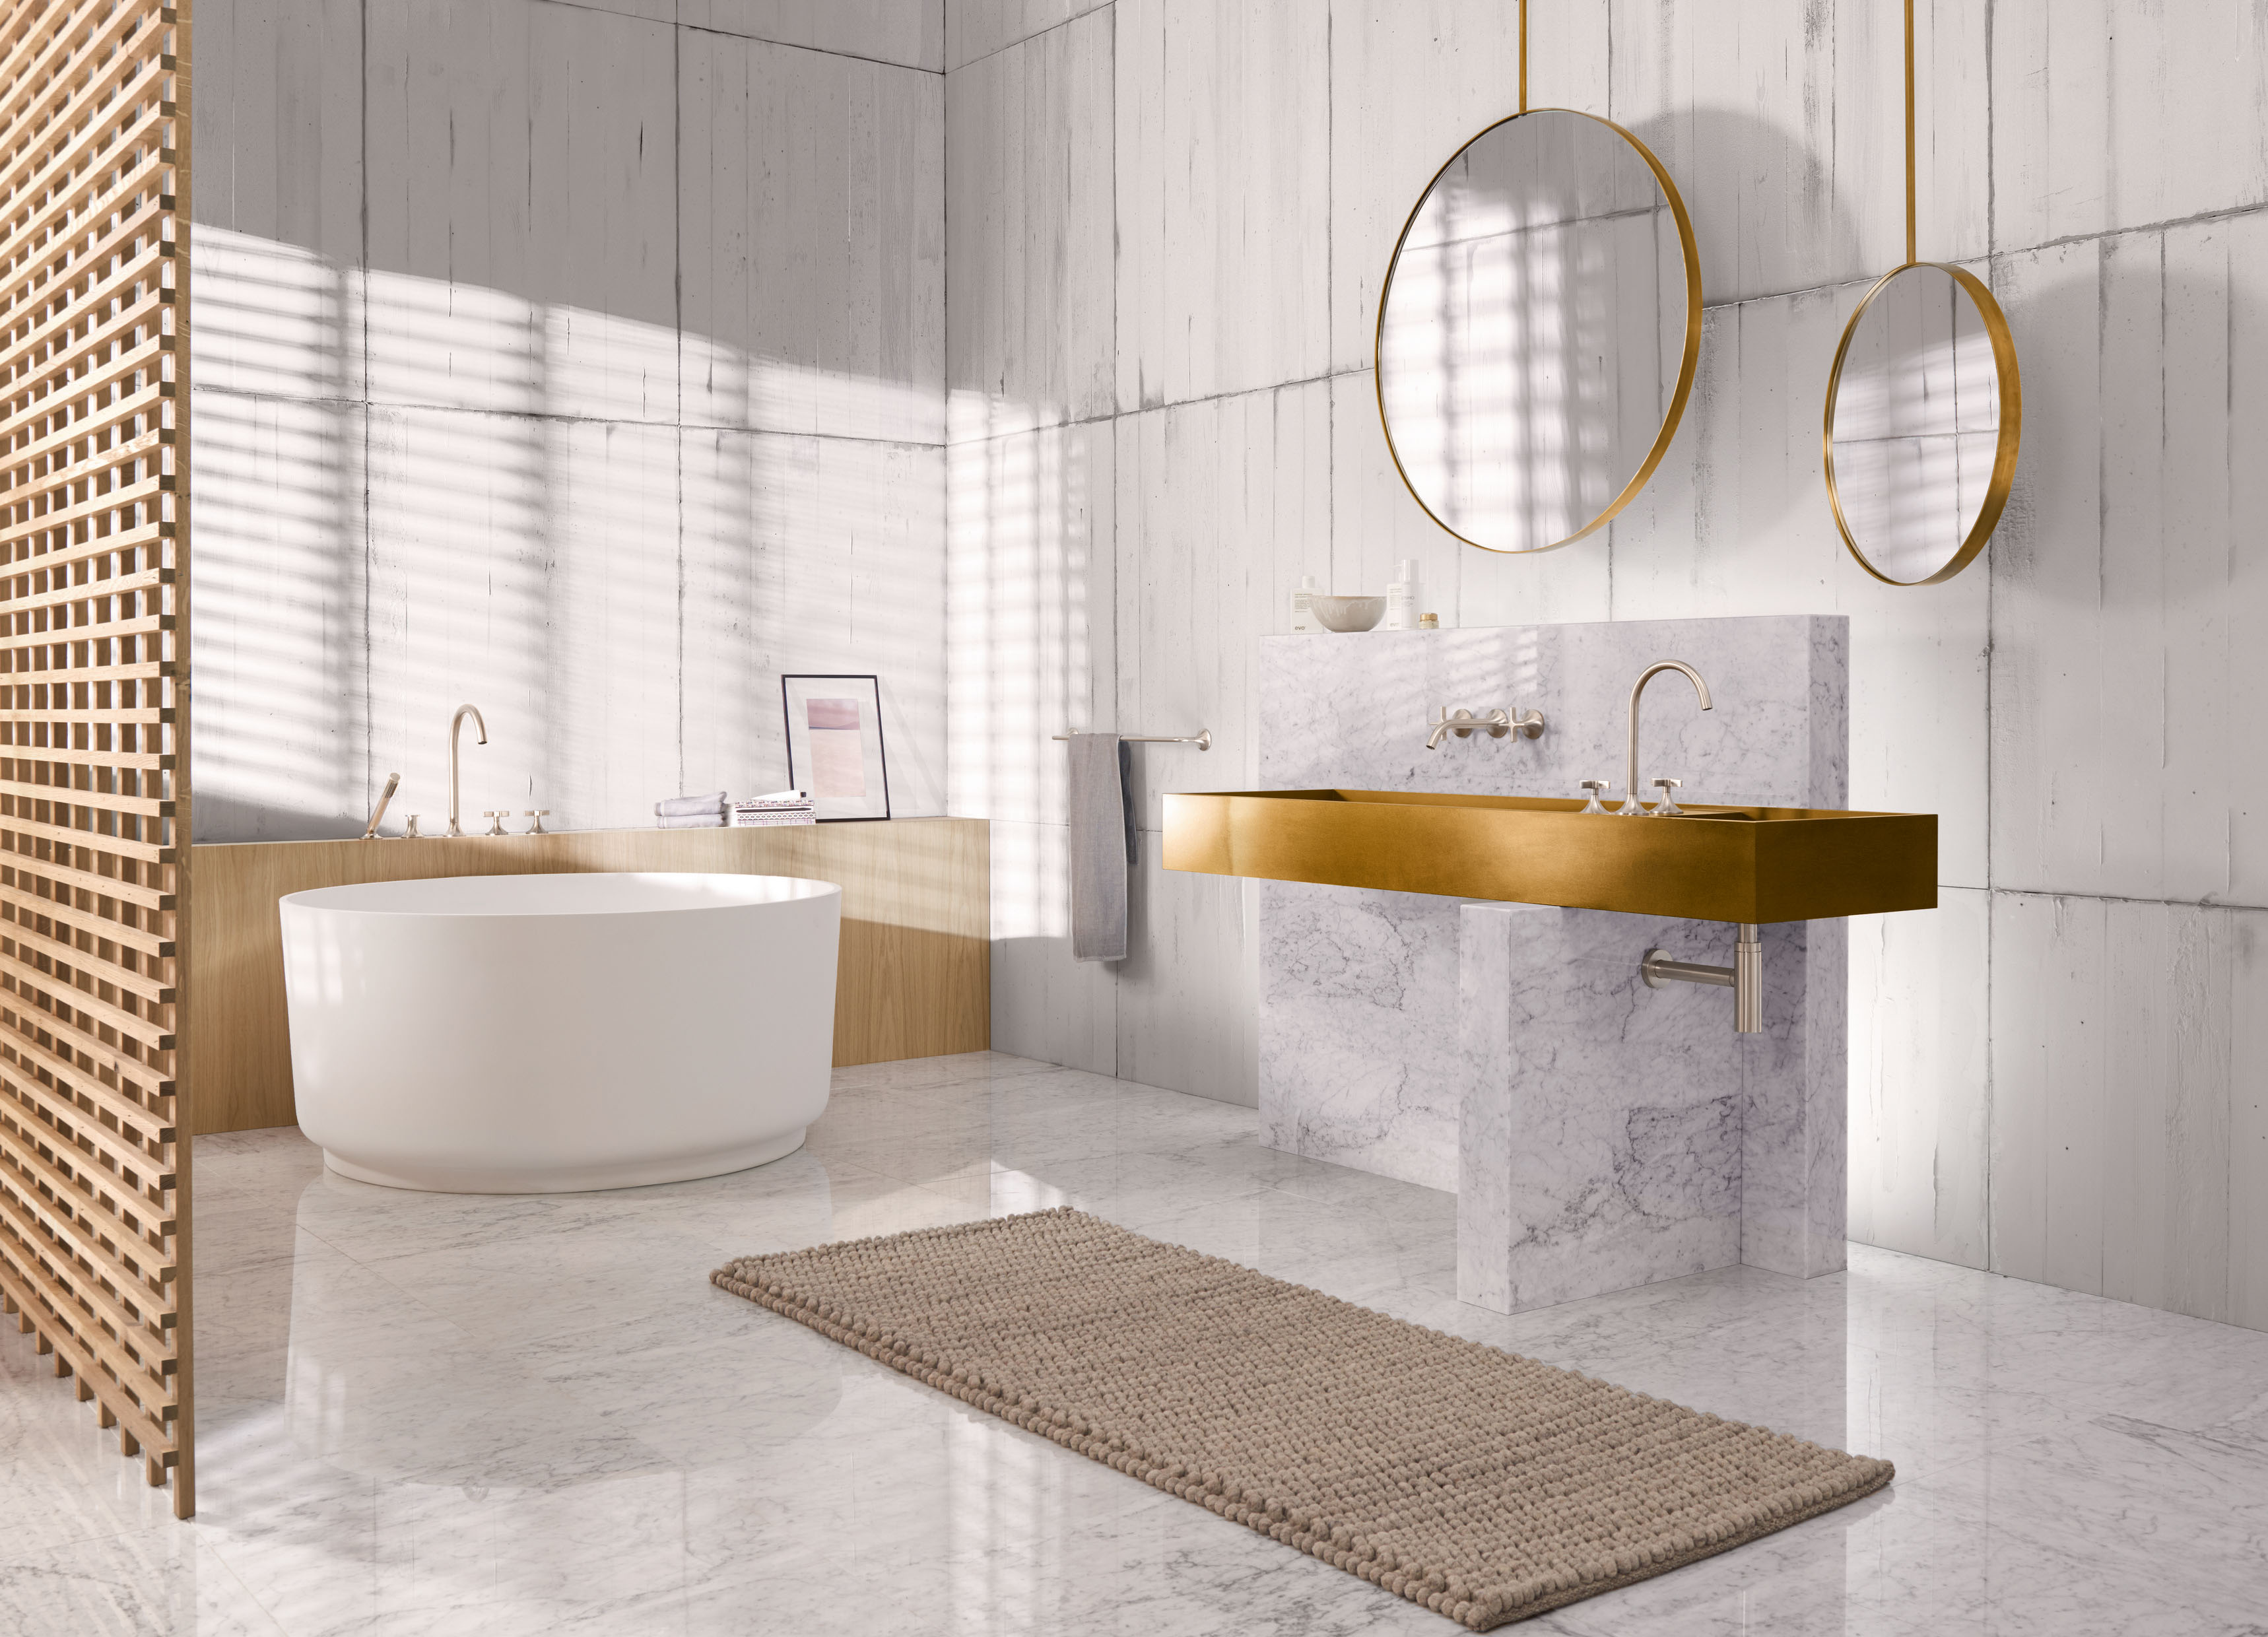 Dornbracht Vaia Luxury Bathroom Living